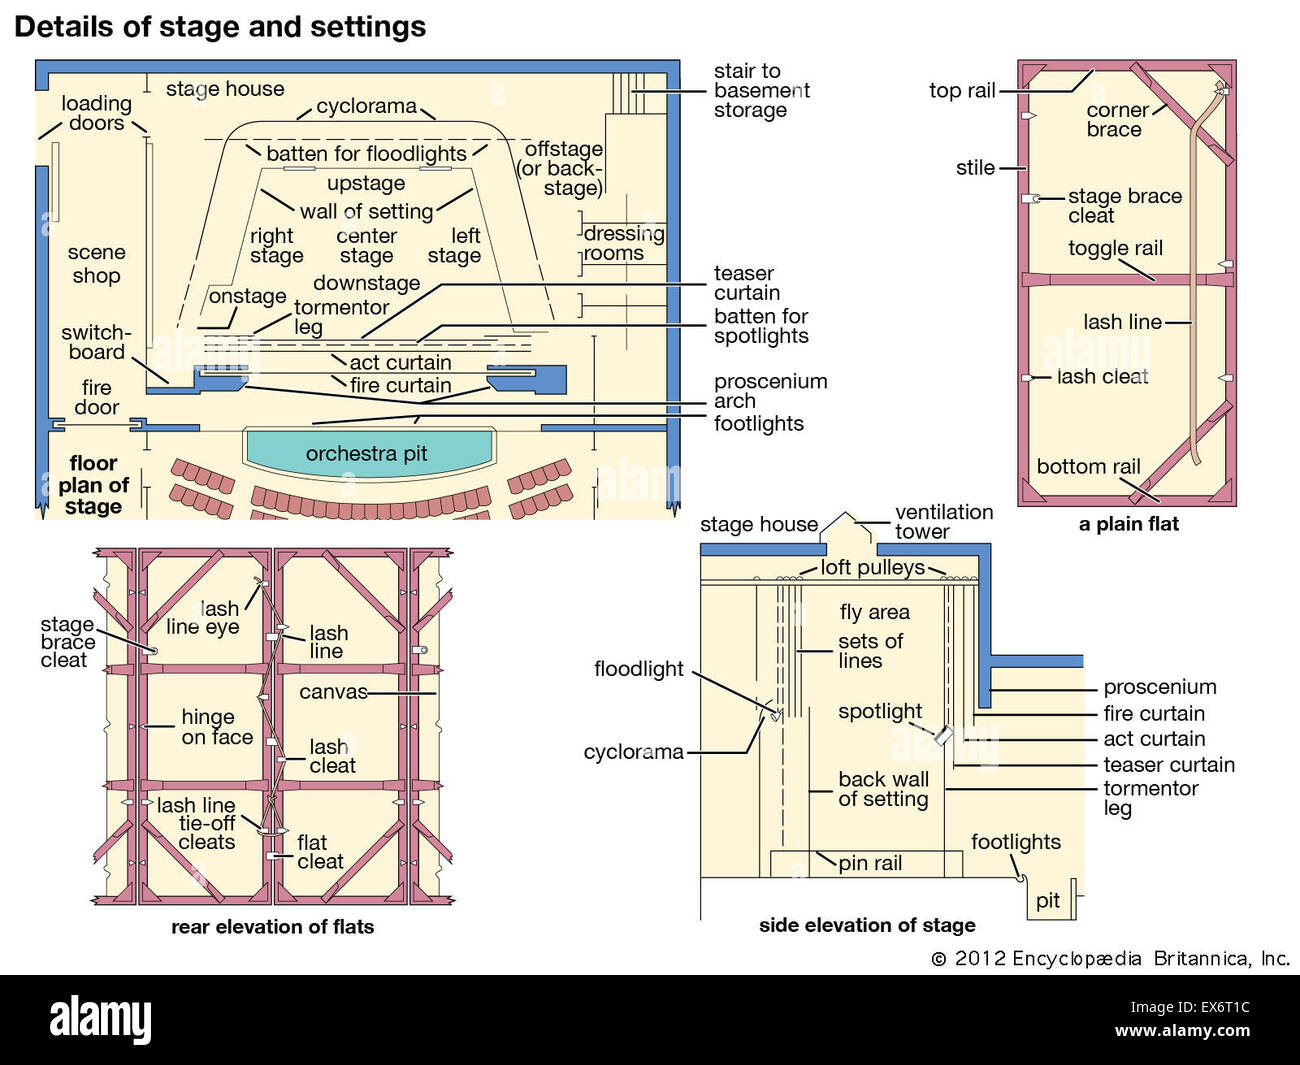 Theater: details of stage and settings - Stock Image